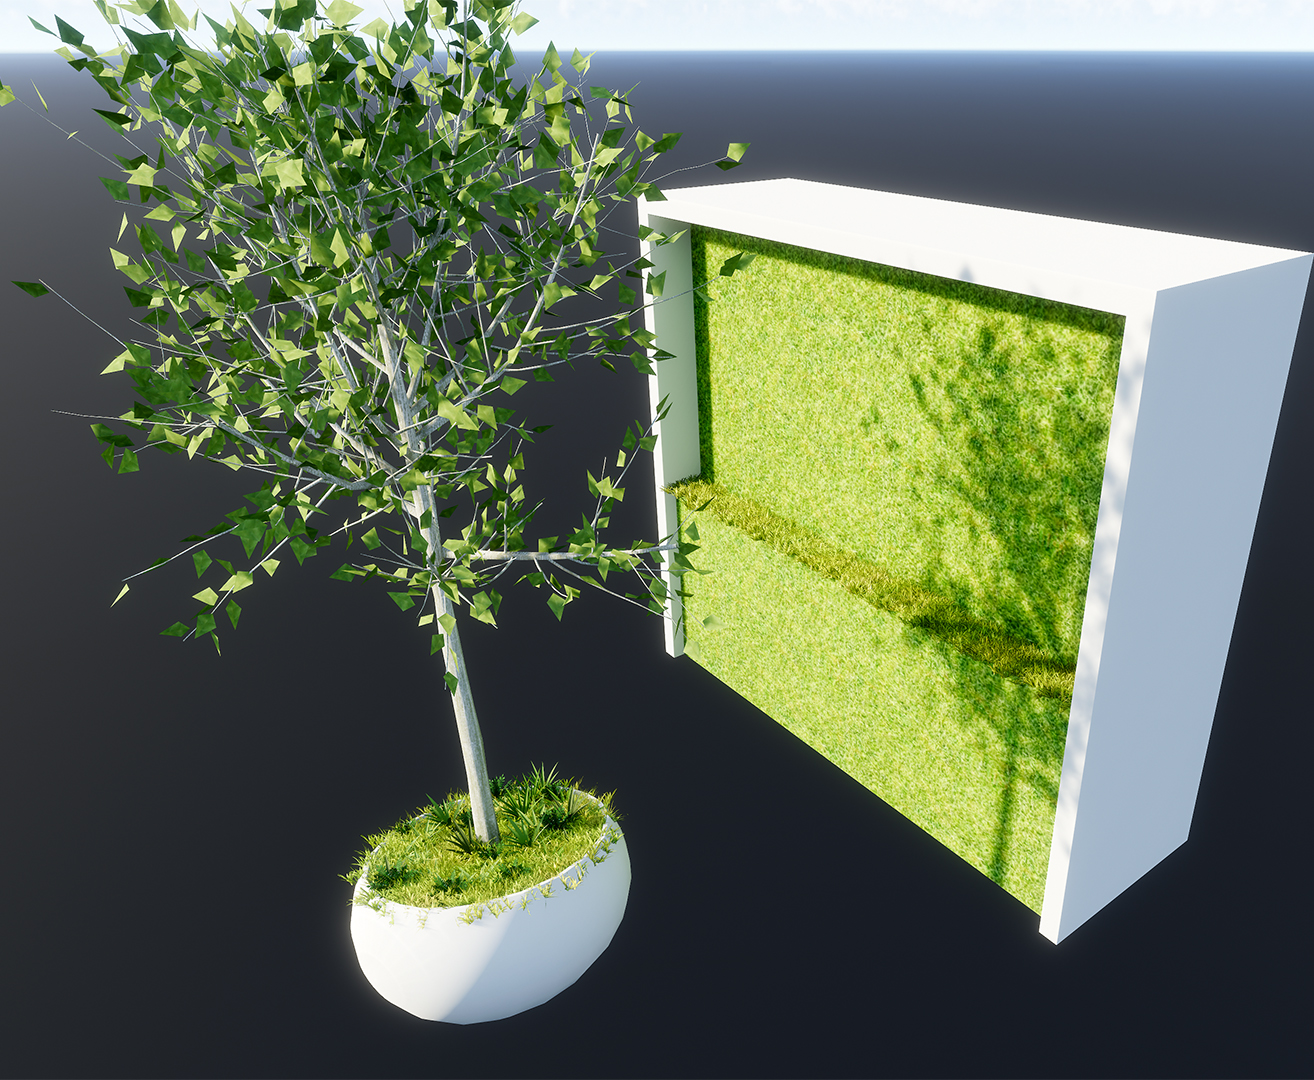 Grass texture on a vertical surface? - Ideas and Requests